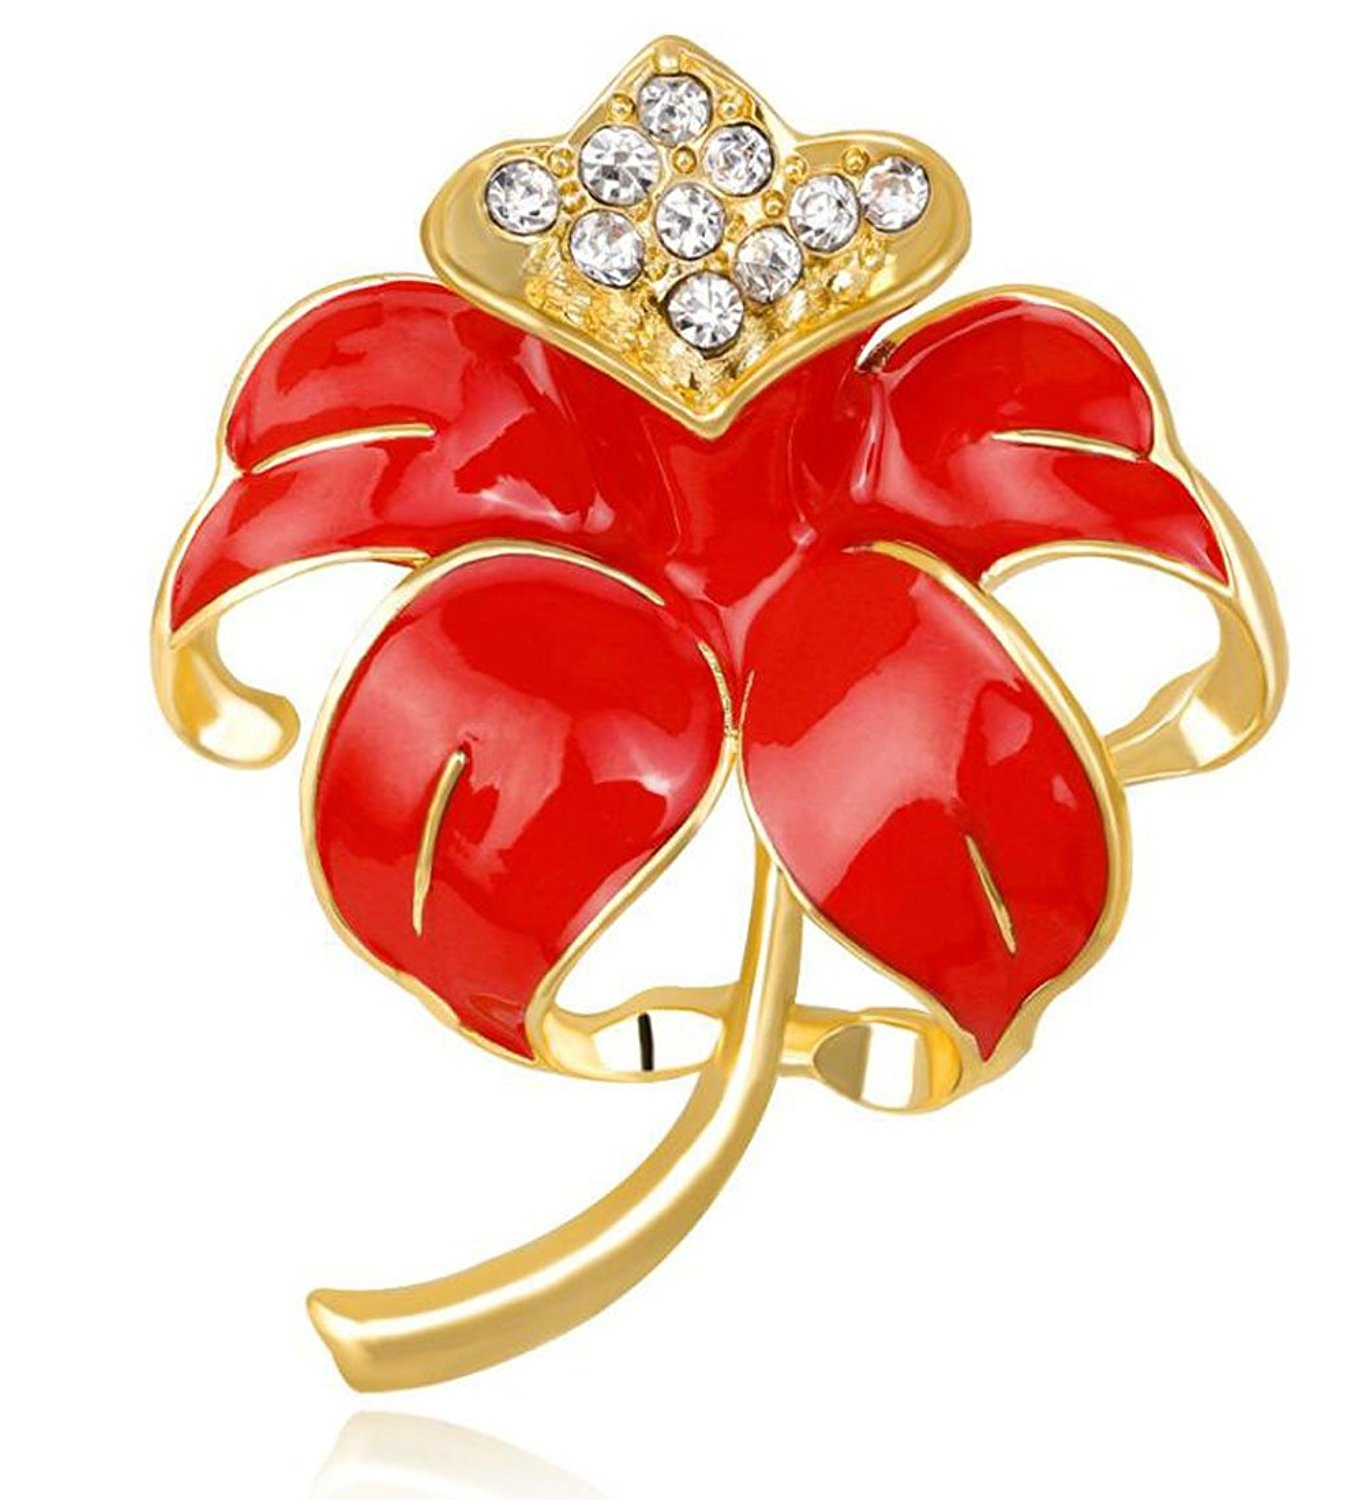 FENGJI Poppy Flower Brooches for Women Remembrance Poppies Pins Rhinestone Brooch Badge Gift 47GrO